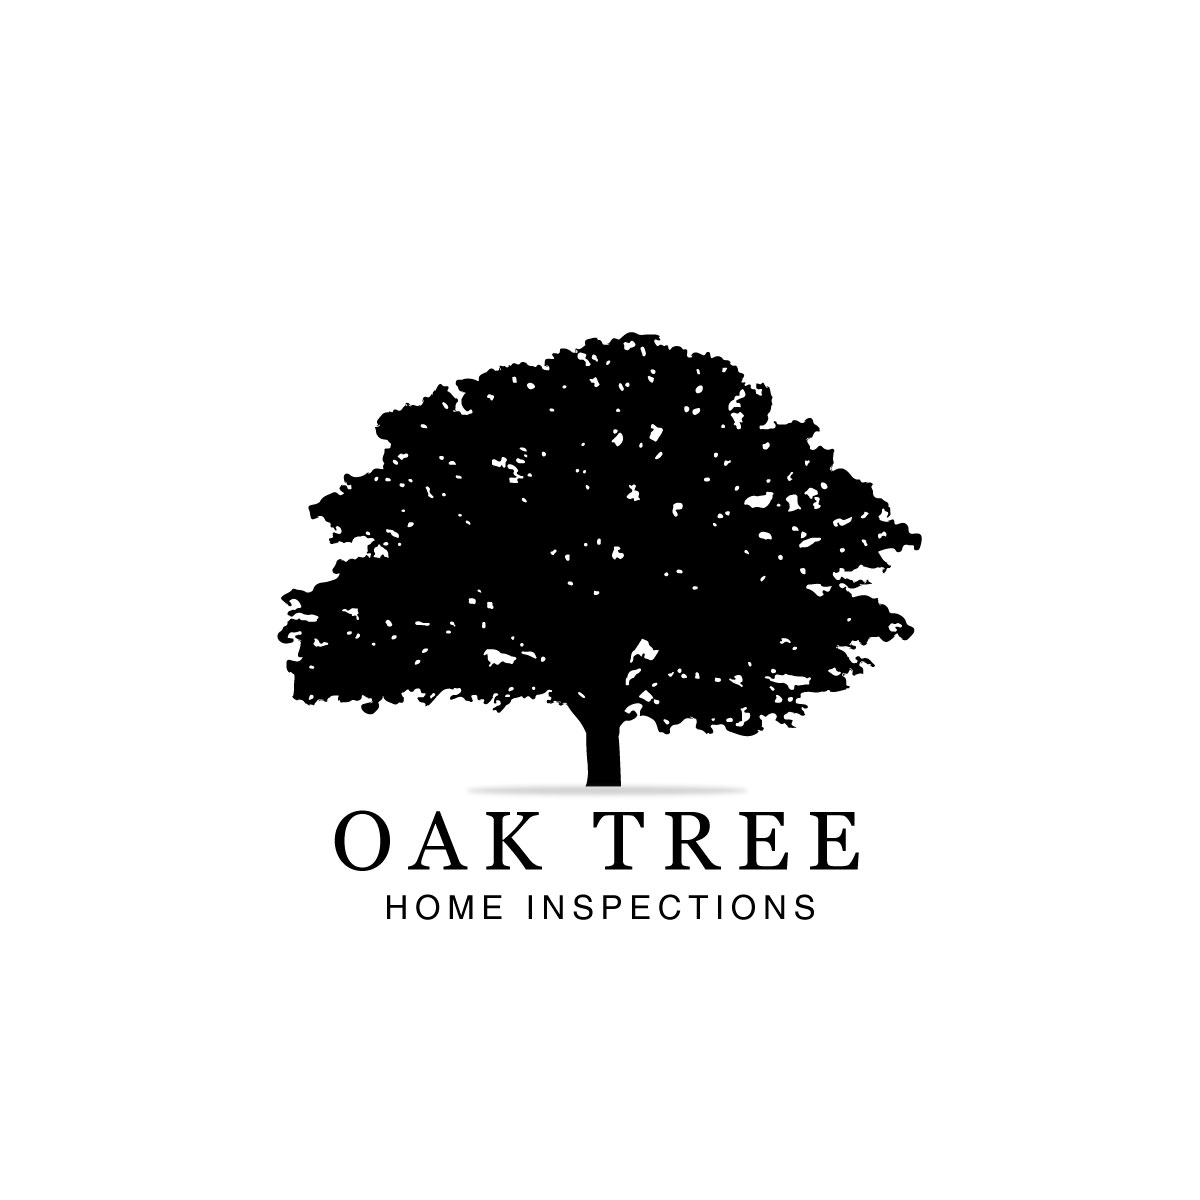 OakTree Home Inspections primary image